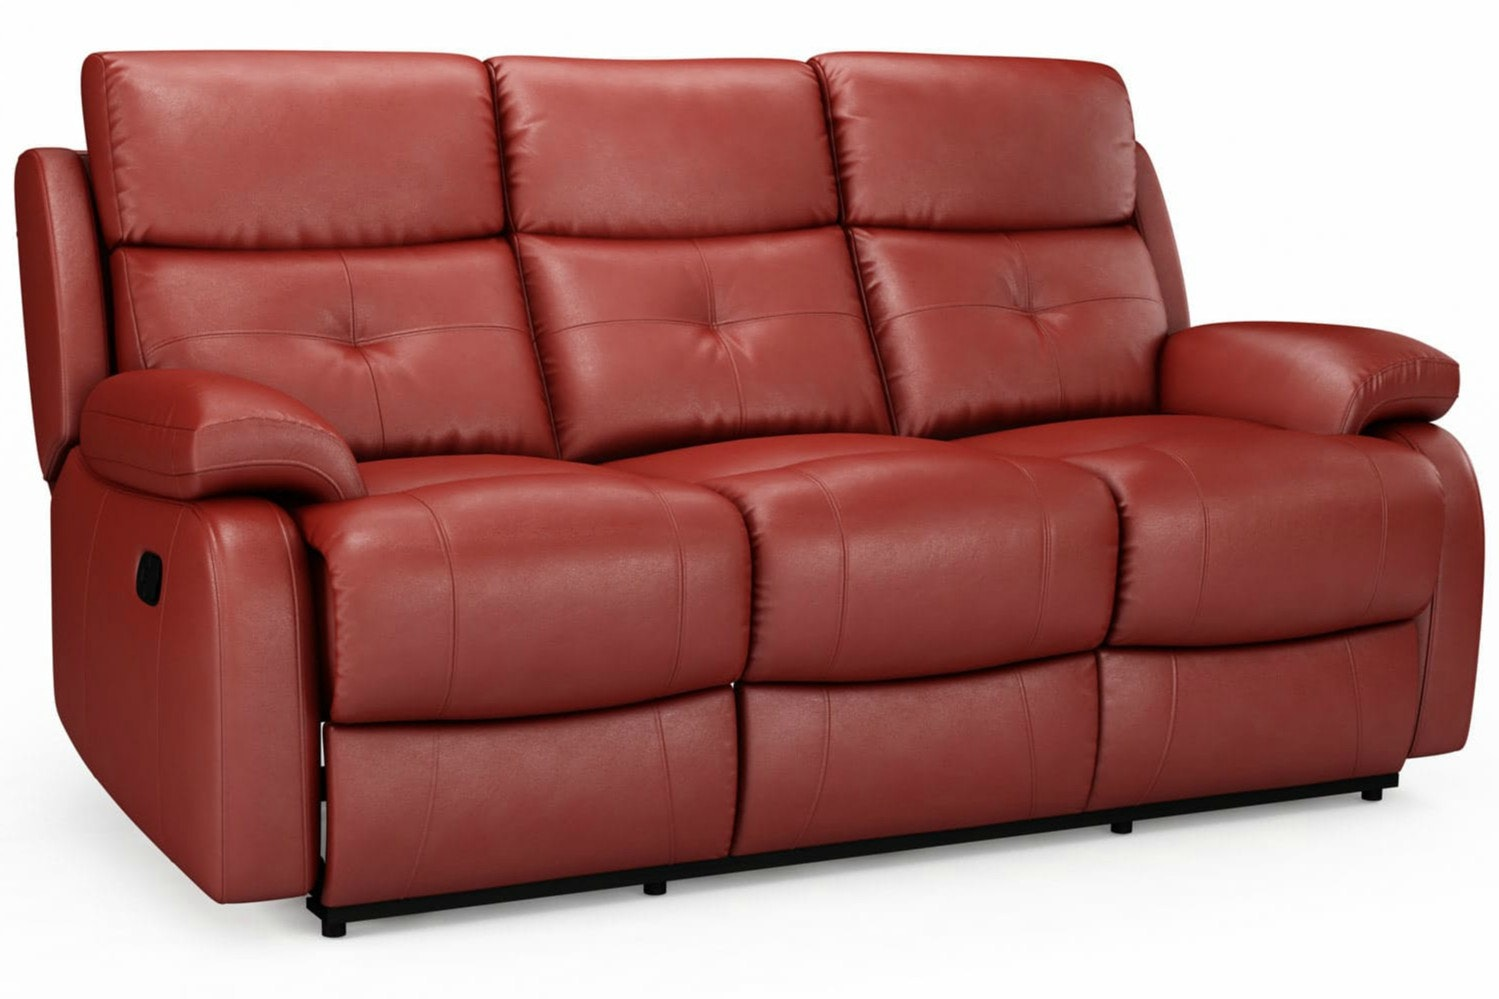 Mino 3 Seater Leather Recliner Sofa